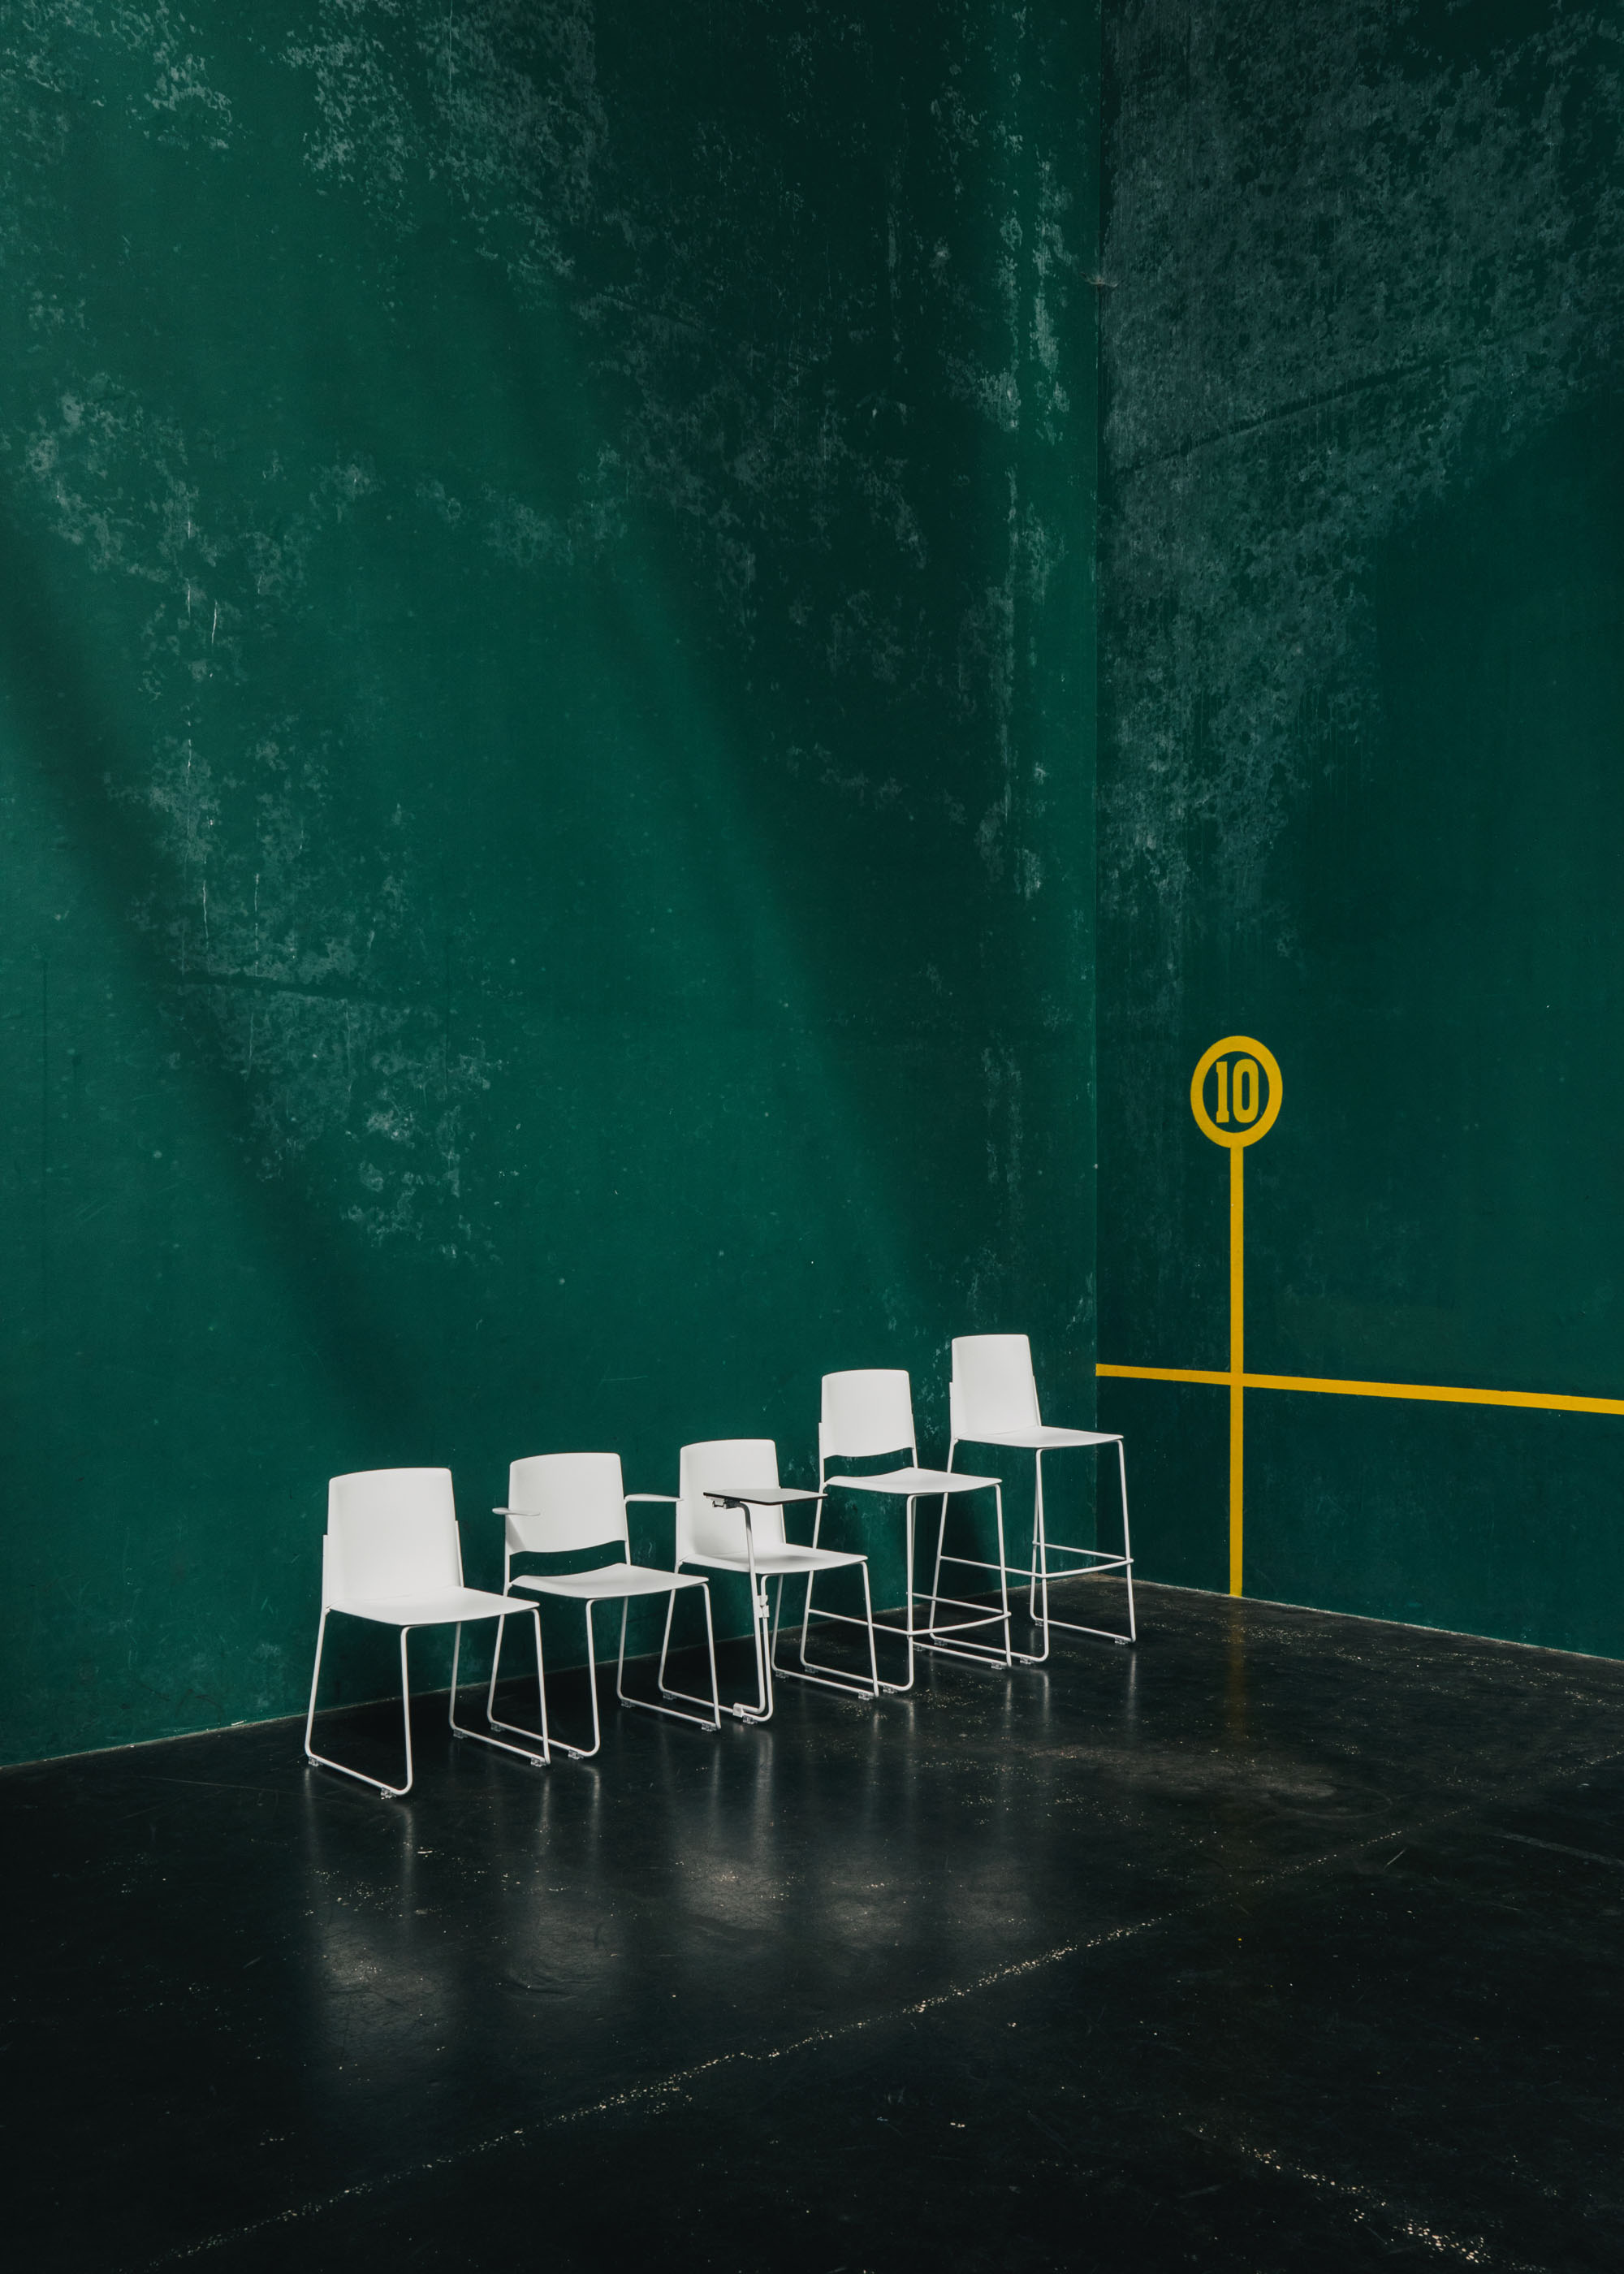 #furniture #enea #design #clase #basque #chairs #fronton #green